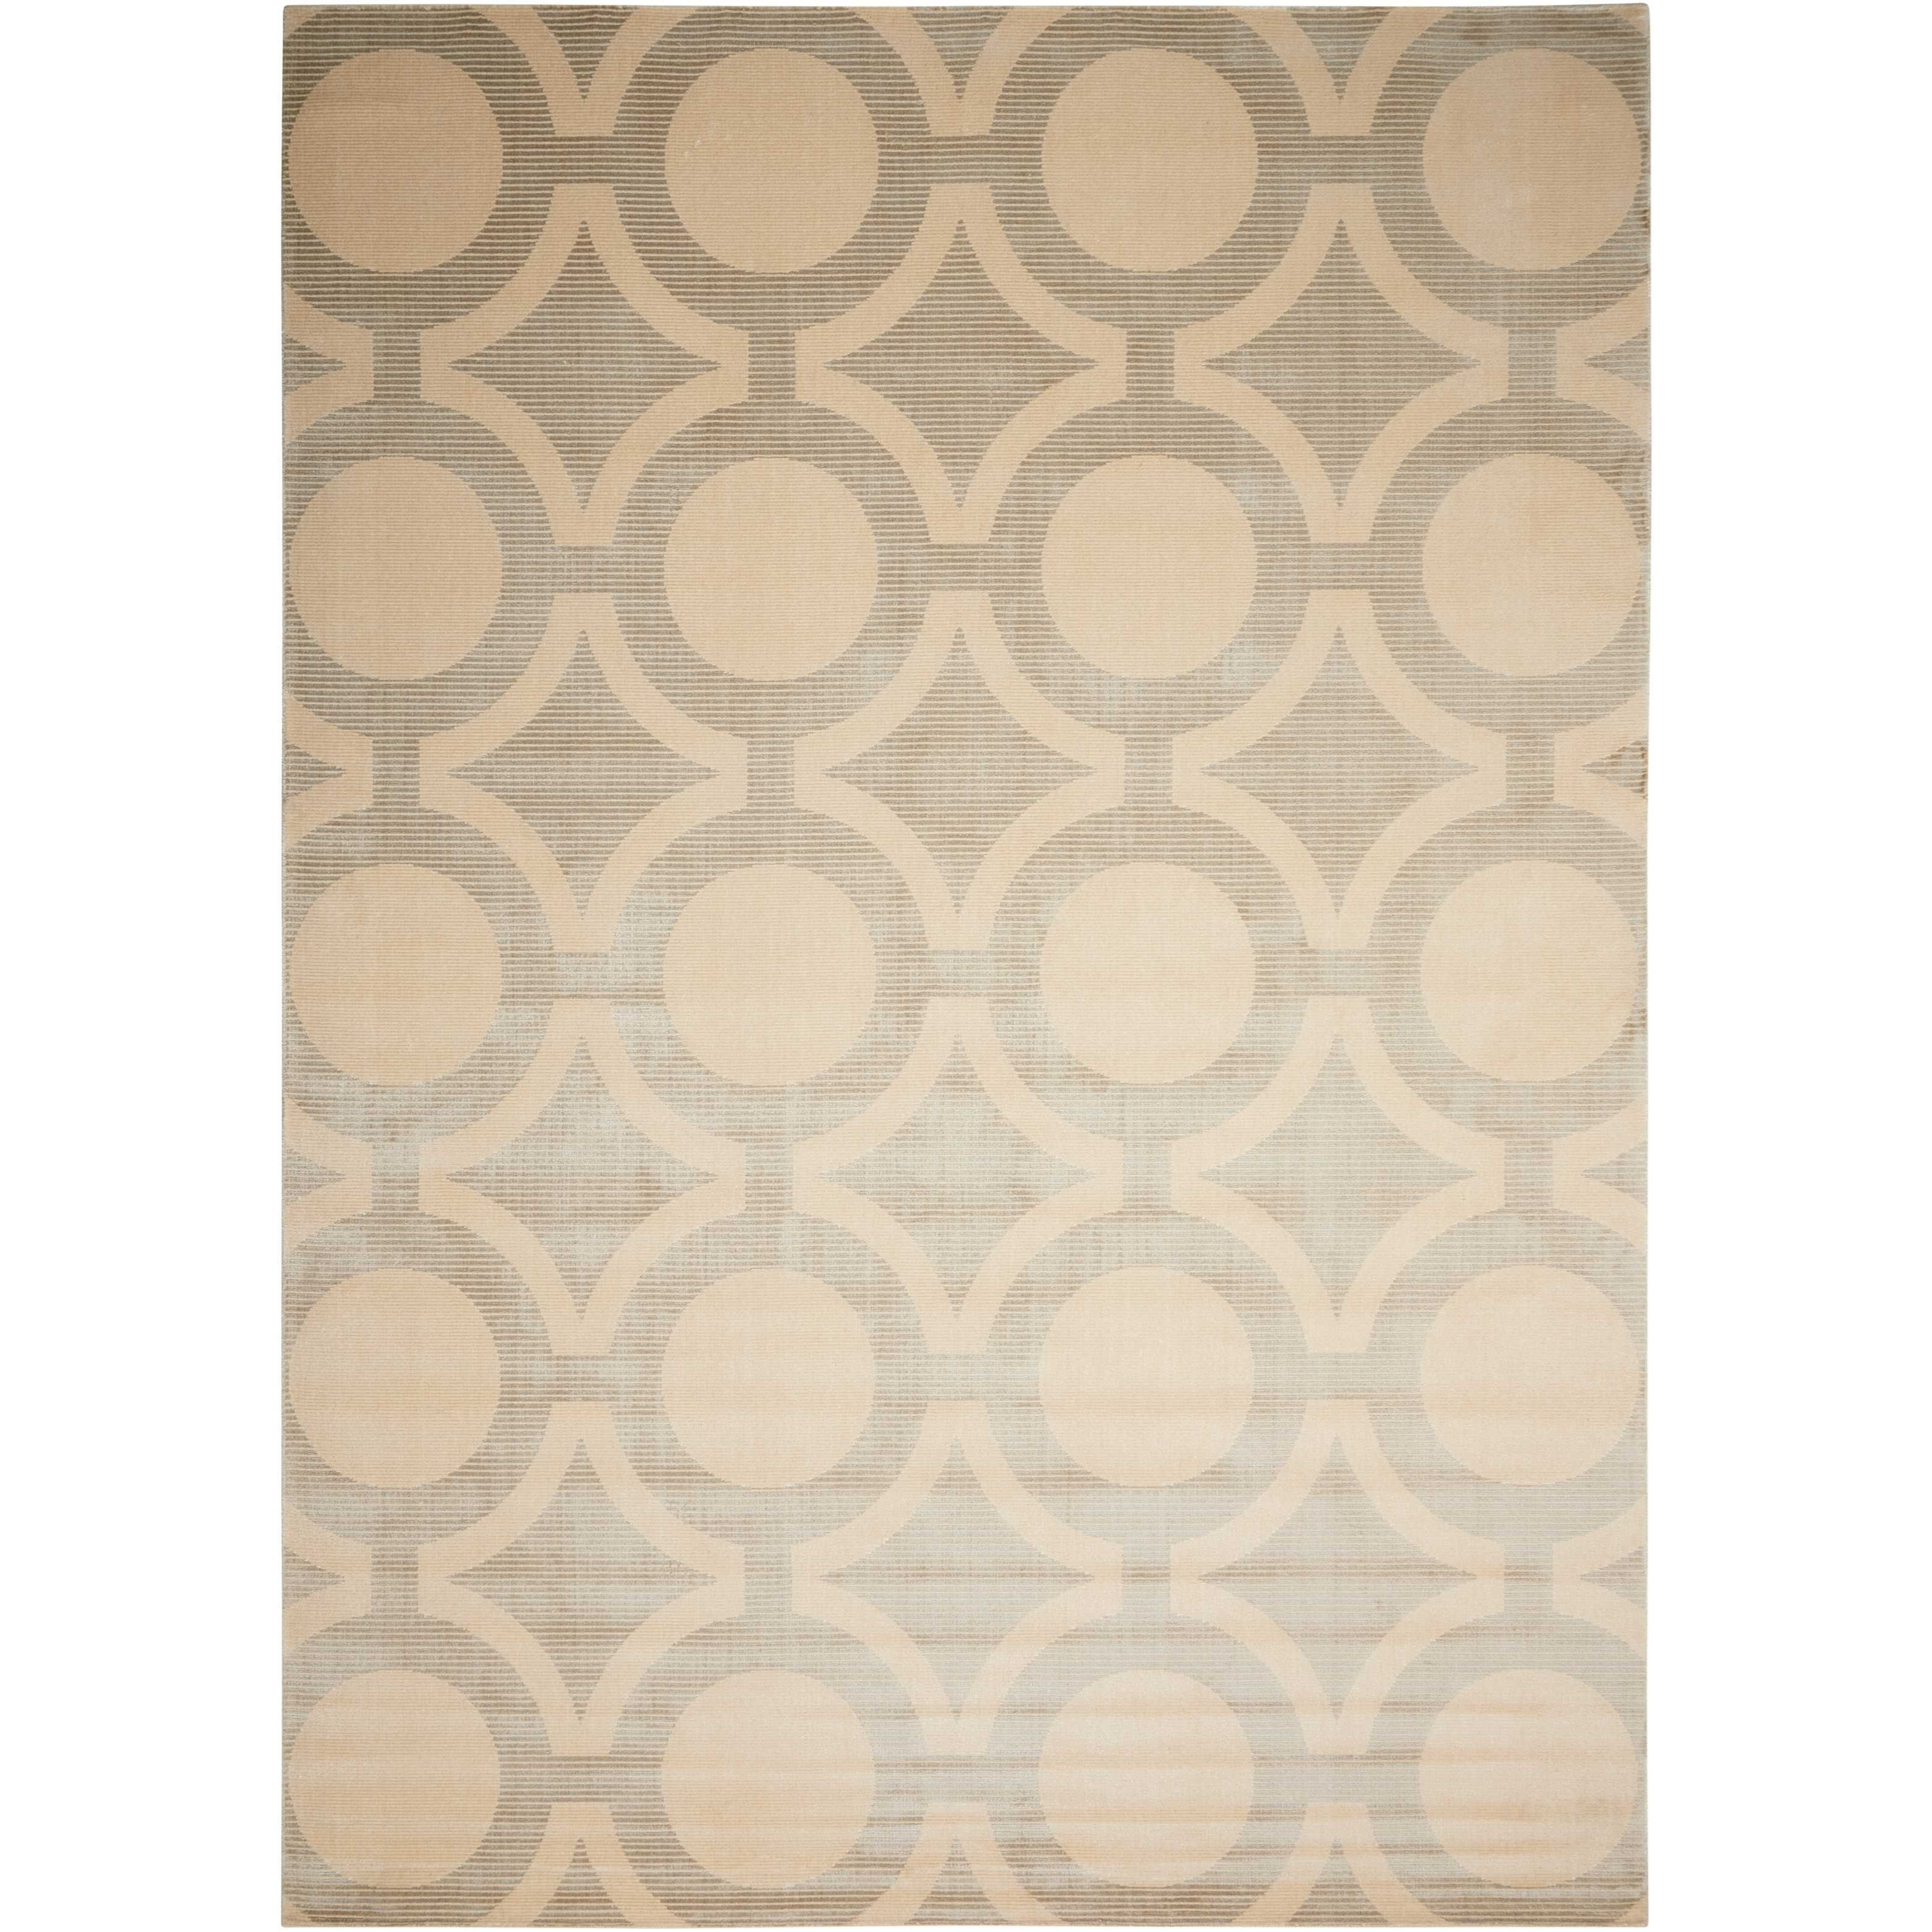 """Luminance 7'6"""" x 10'6"""" Cream Grey Rectangle Rug by Nourison at Home Collections Furniture"""